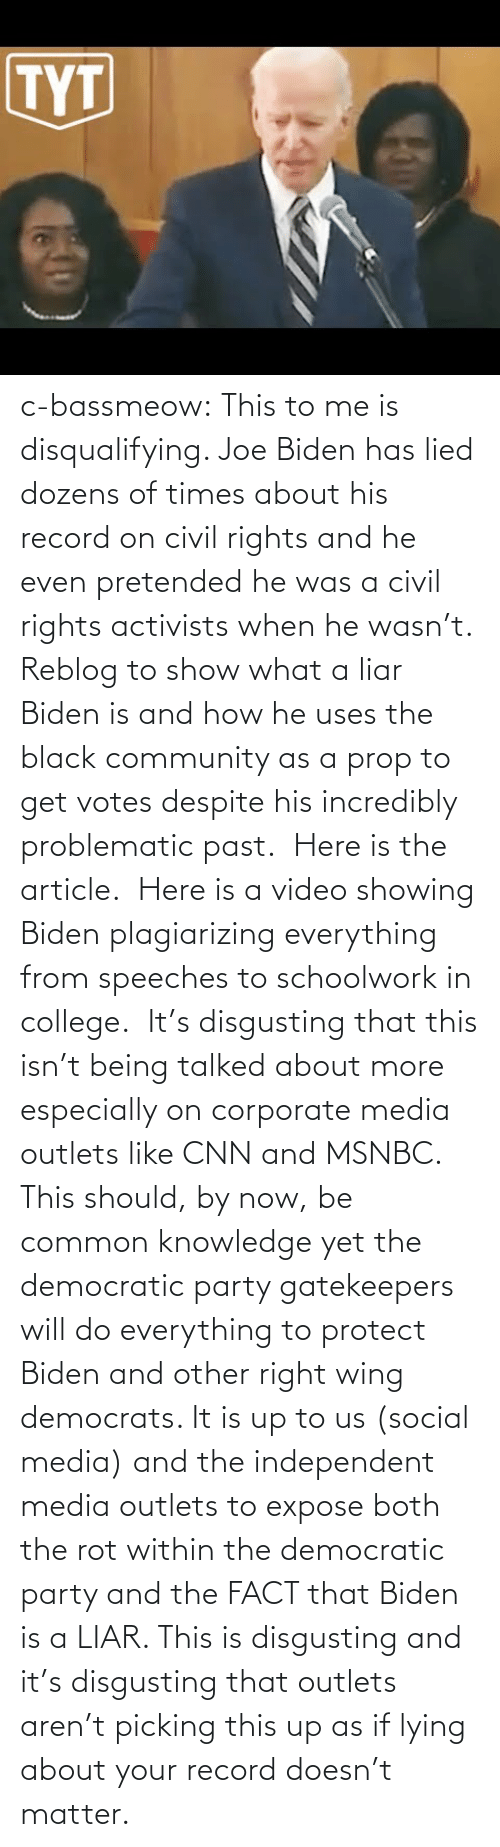 College: c-bassmeow: This to me is disqualifying. Joe Biden has lied dozens of times about his record on civil rights and he even pretended he was a civil rights activists when he wasn't. Reblog to show what a liar Biden is and how he uses the black community as a prop to get votes despite his incredibly problematic past.   Here is the article.   Here is a video showing Biden plagiarizing everything from speeches to schoolwork in college.   It's disgusting that this isn't being talked about more especially on corporate media outlets like CNN and MSNBC. This should, by now, be common knowledge yet the democratic party gatekeepers will do everything to protect Biden and other right wing democrats. It is up to us (social media) and the independent media outlets to expose both the rot within the democratic party and the FACT that Biden is a LIAR. This is disgusting and it's disgusting that outlets aren't picking this up as if lying about your record doesn't matter.